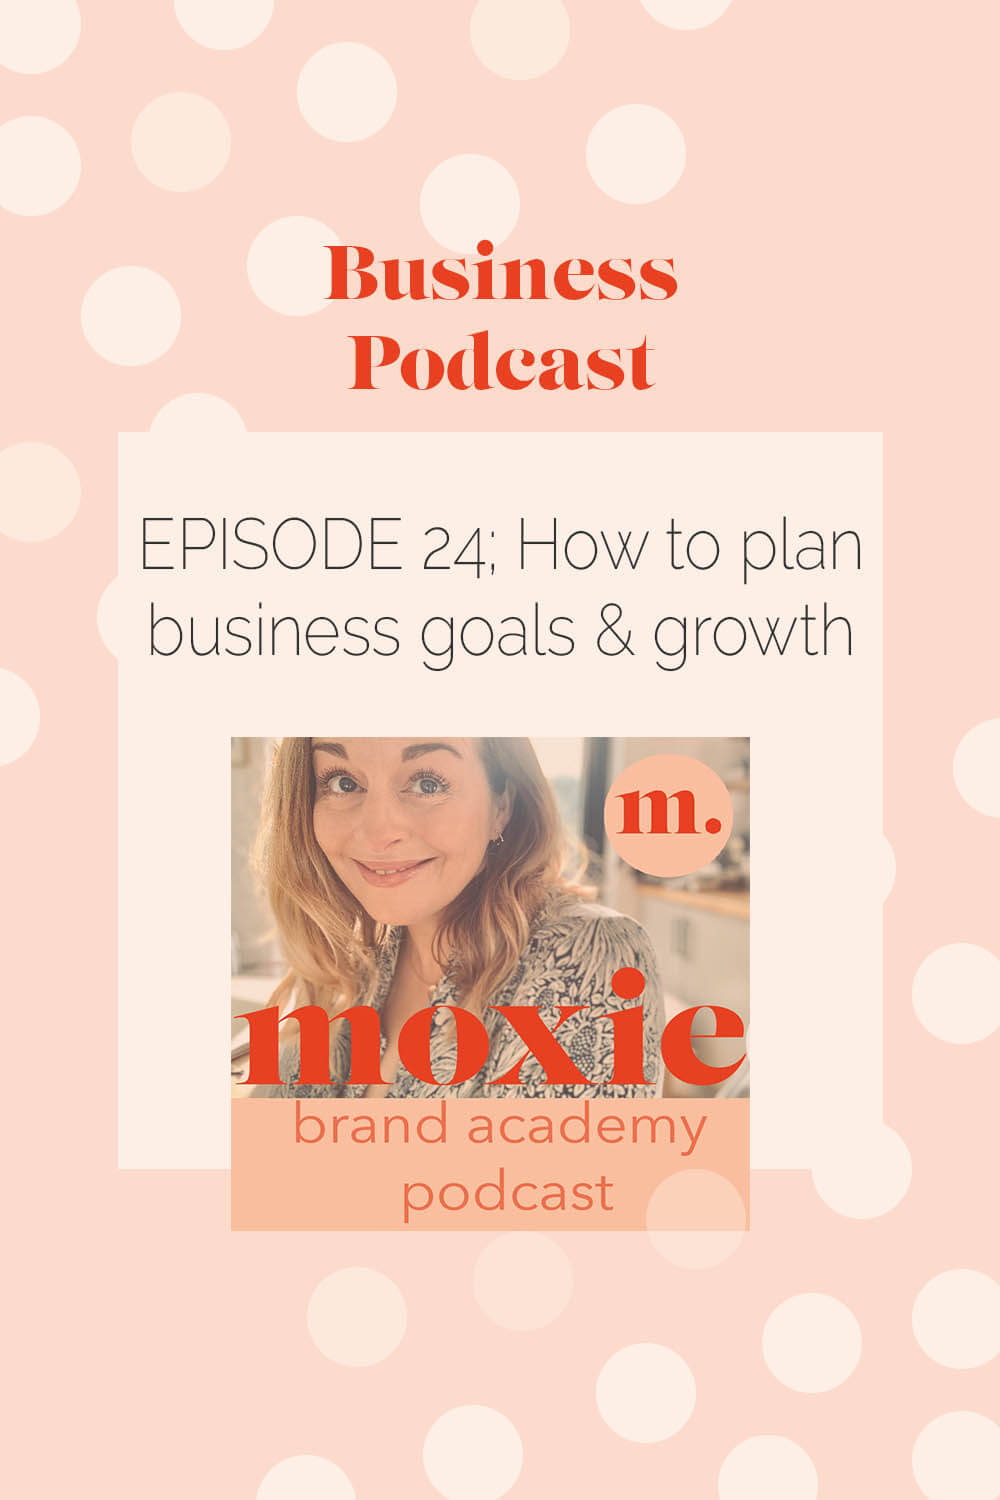 How to plan business goals & growth